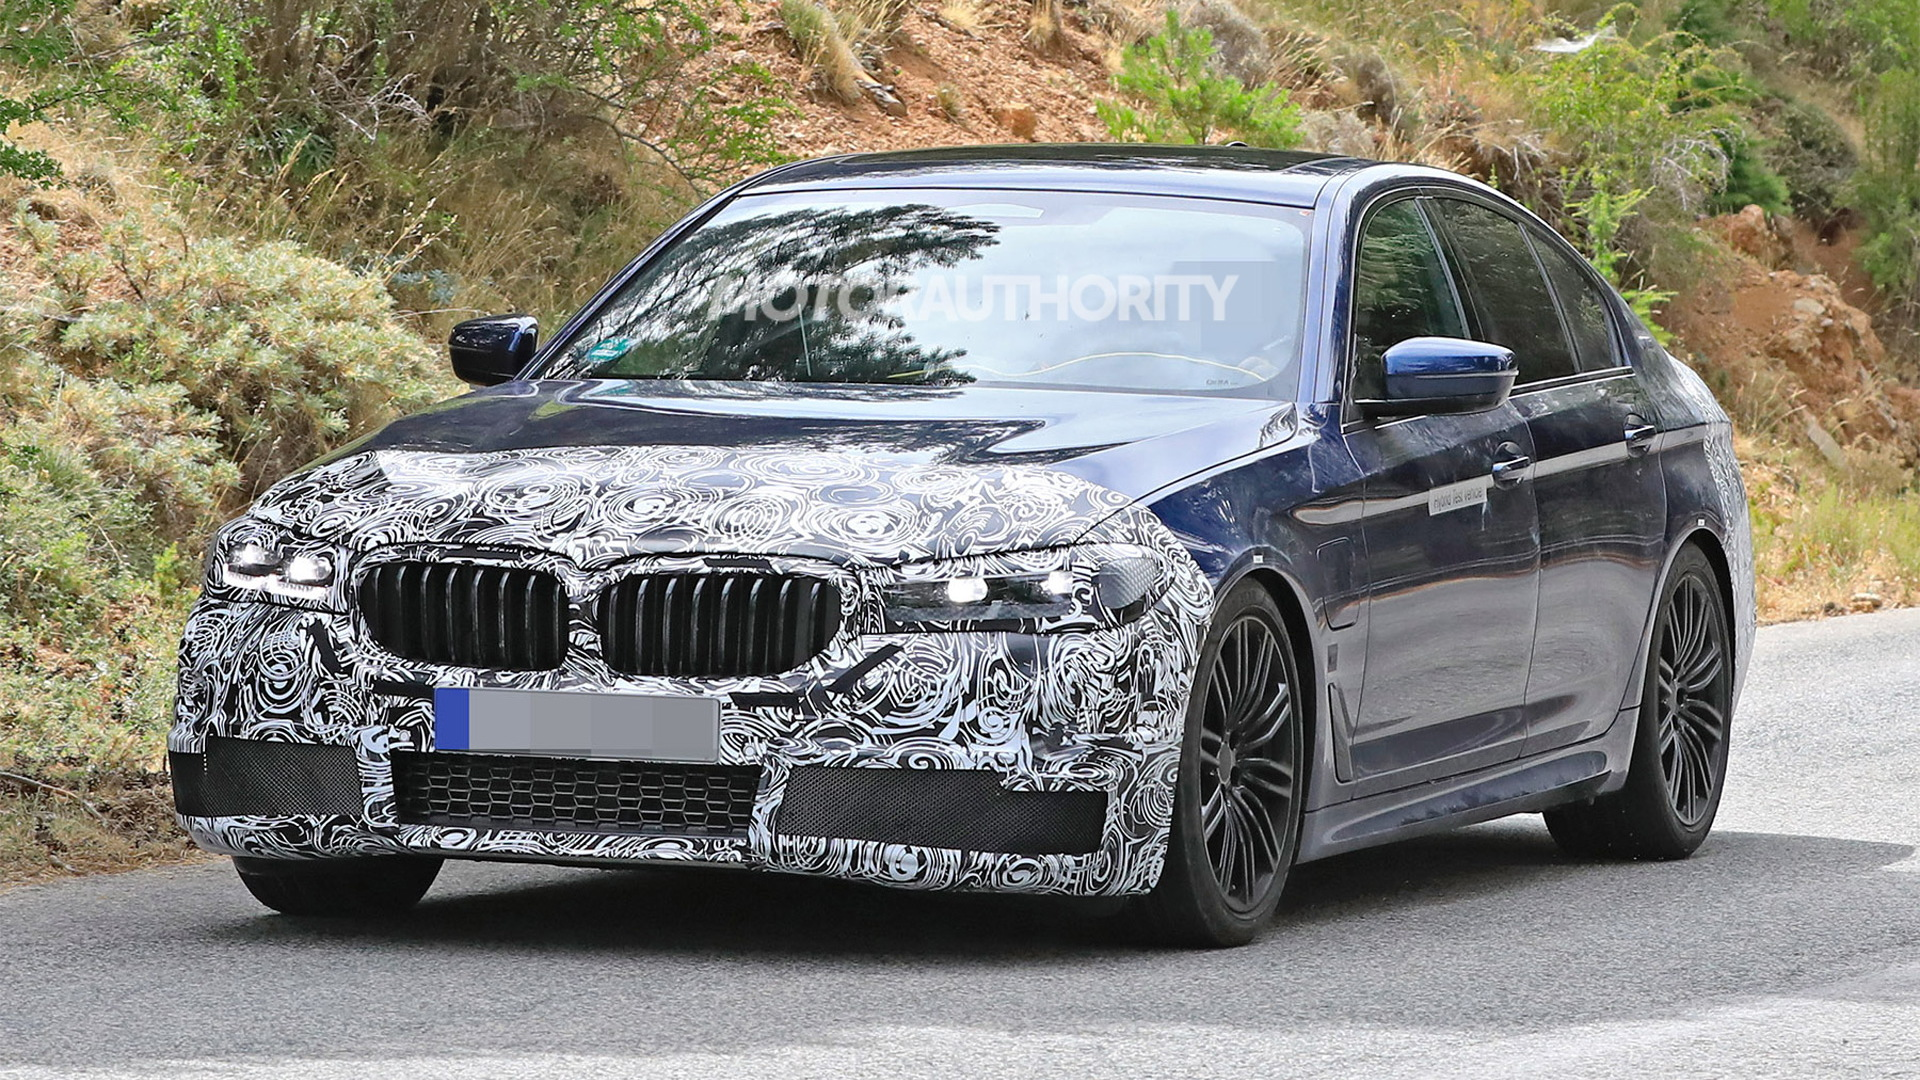 2021 BMW 5-Series facelift spy shots - Photo credit S. Baldauf/SB-Medien